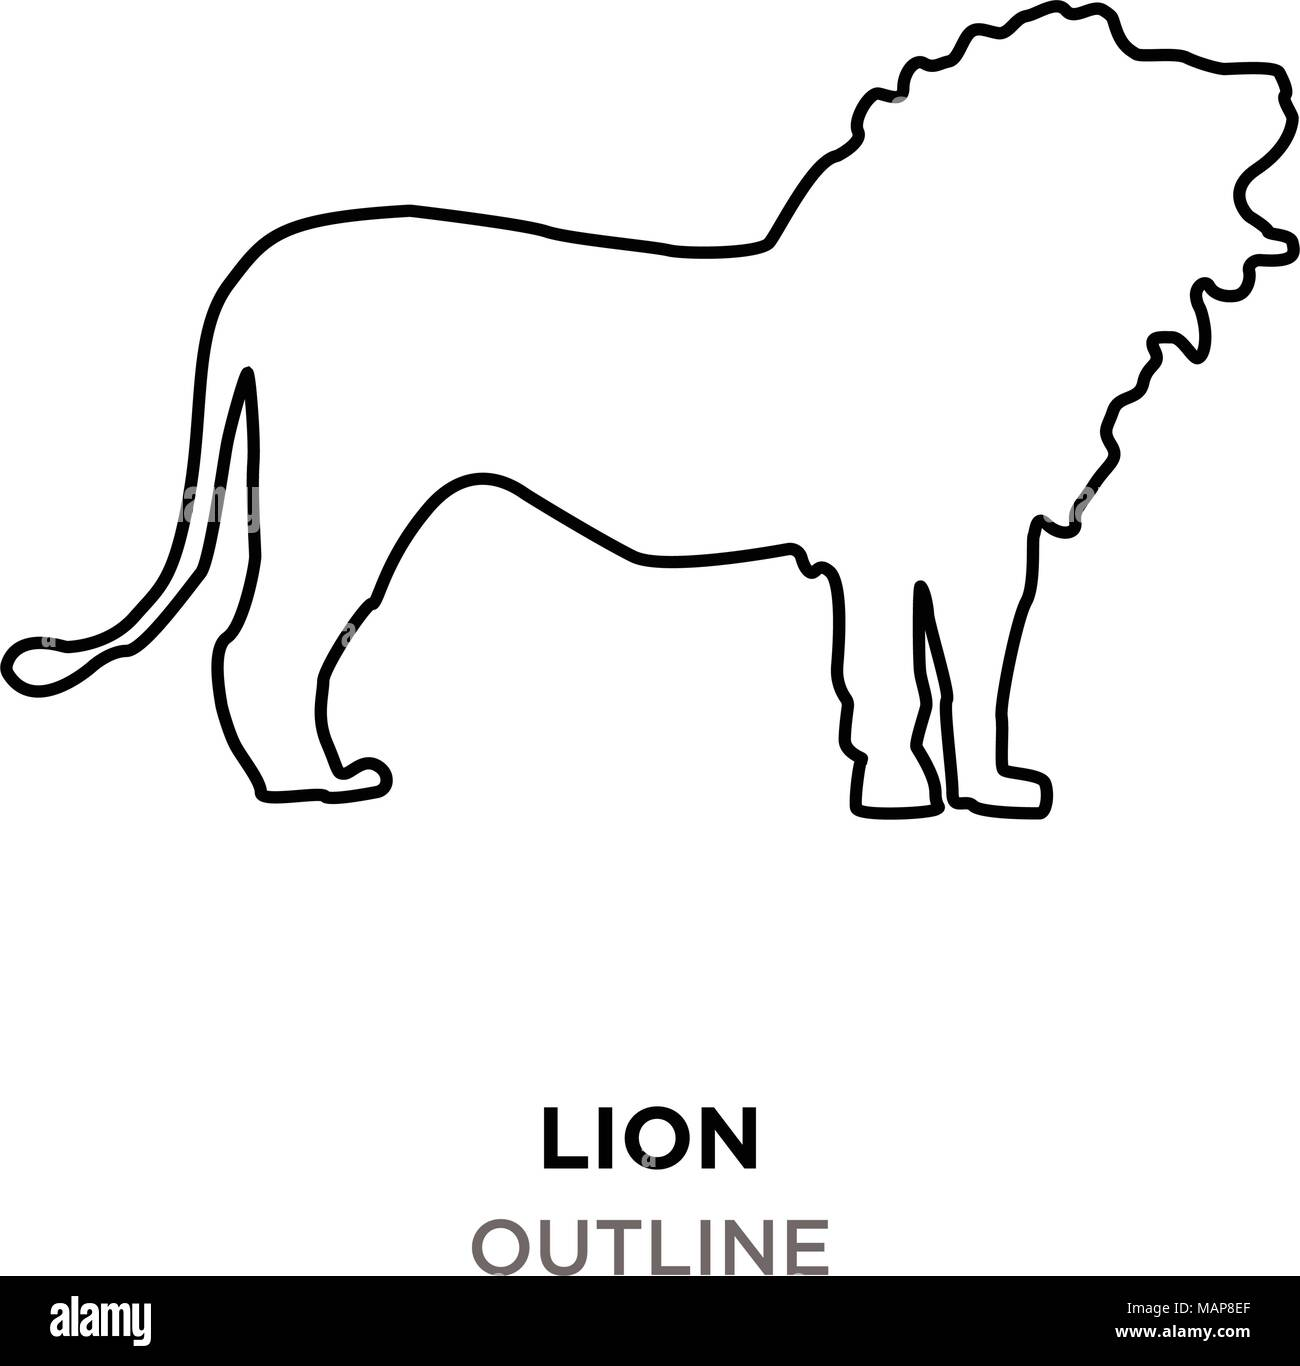 Lion Outline Images On White Background Stock Vector Image Art Alamy Lion outline tribal embroidery design in 3x3 4x4 and 5x7 heart outline valentine embroidery design in 1x1 2x2 3x3 4x4 and 5x7 sizes. https www alamy com lion outline images on white background image178739863 html